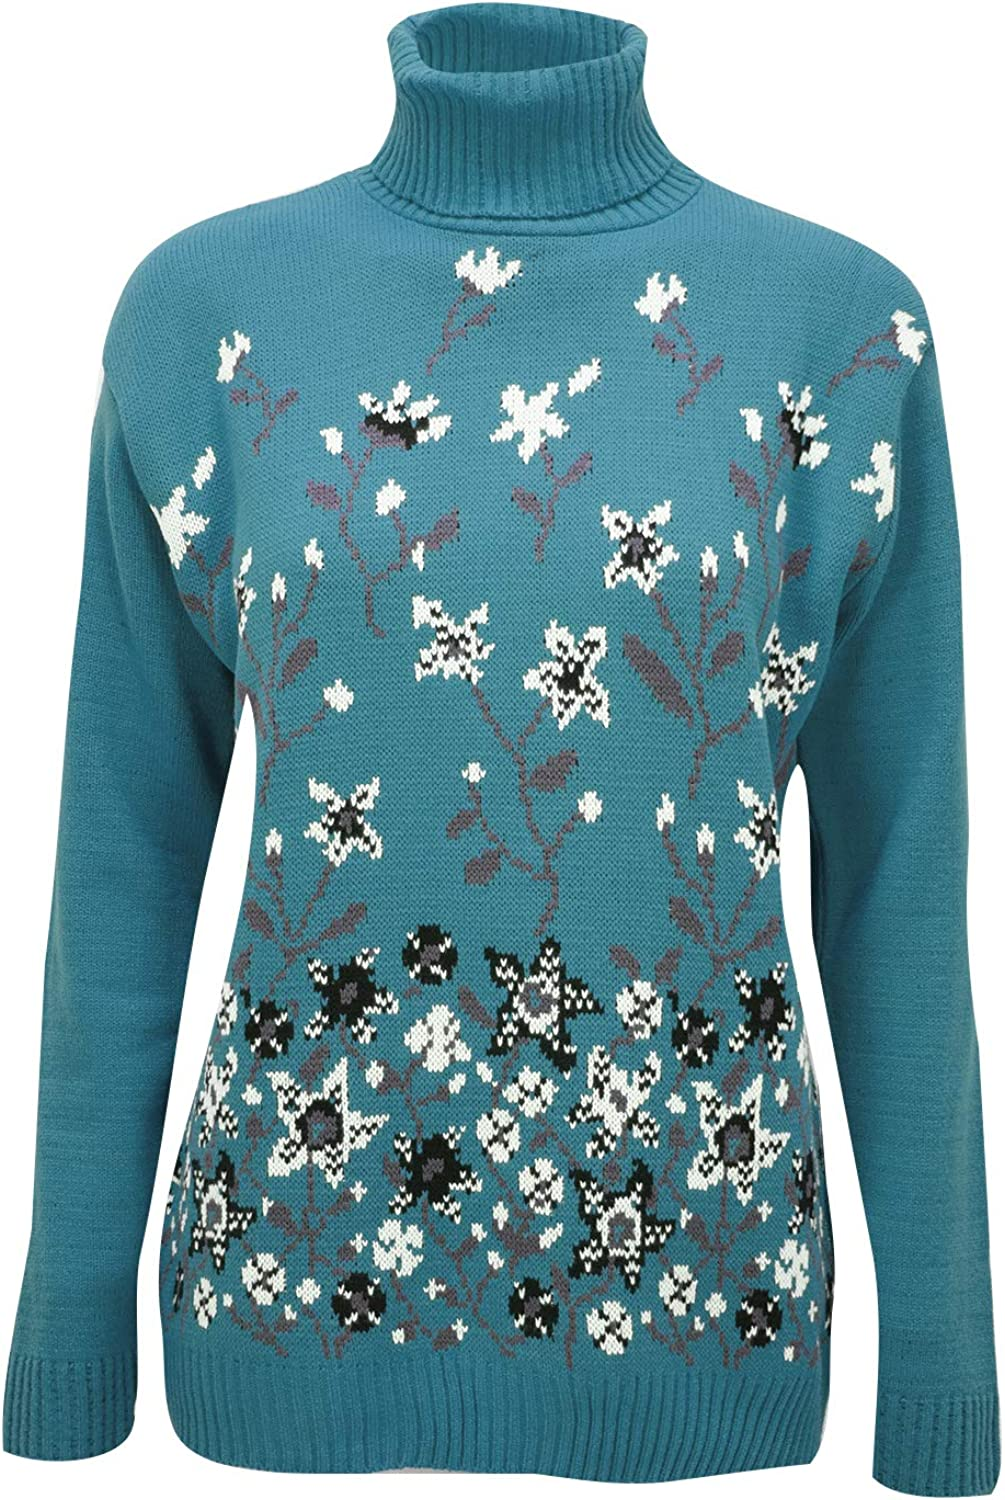 Fashion Star Womens Ladies Floral High Neck Oversized Jumper